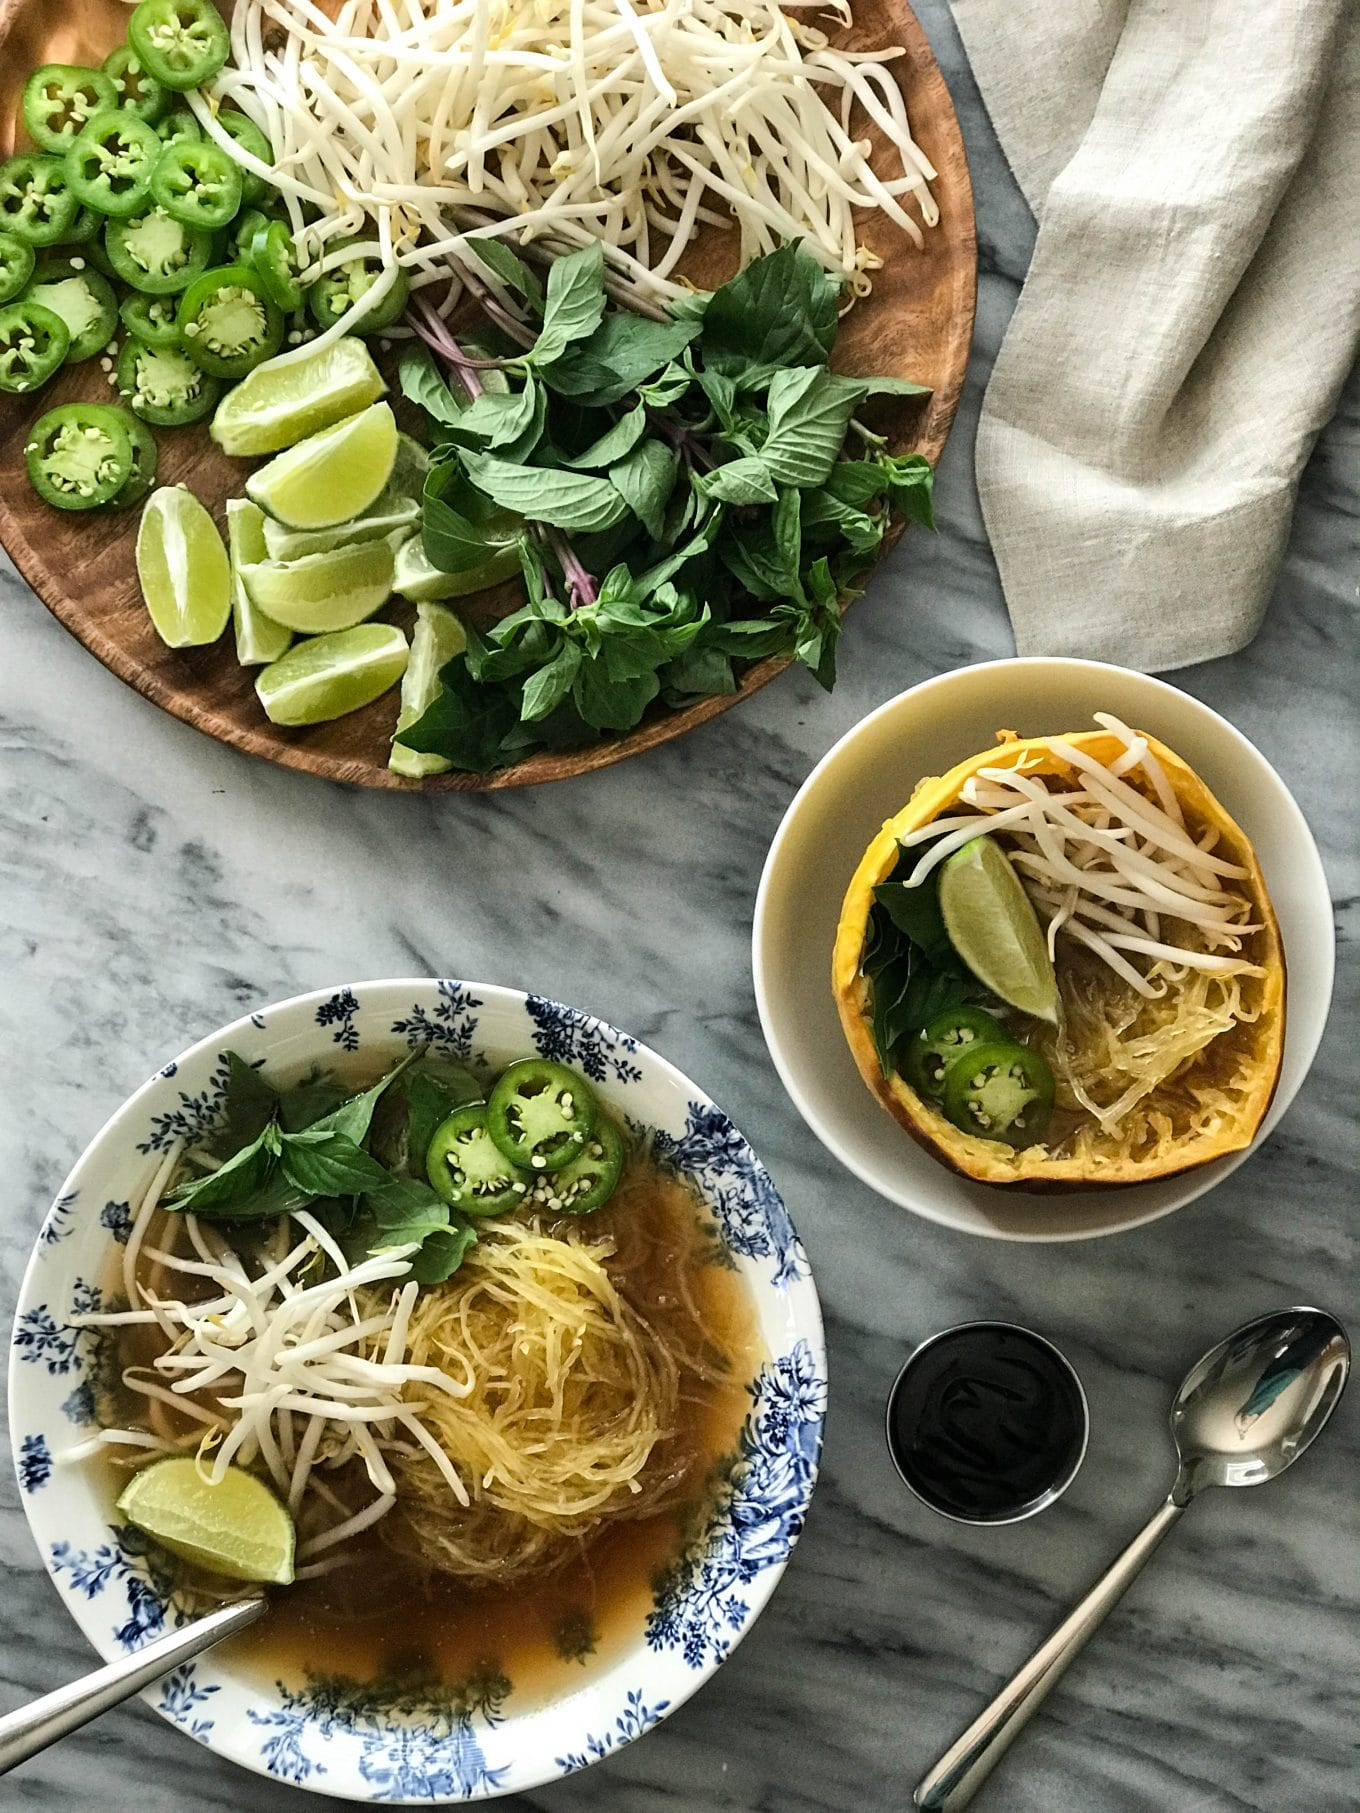 Spaghetti Squash Vegan Pho | Pho in bowls with toppings of mung bean sprouts, lime, jalapeño, thai basil | https://eatwithinyourmeans.com/